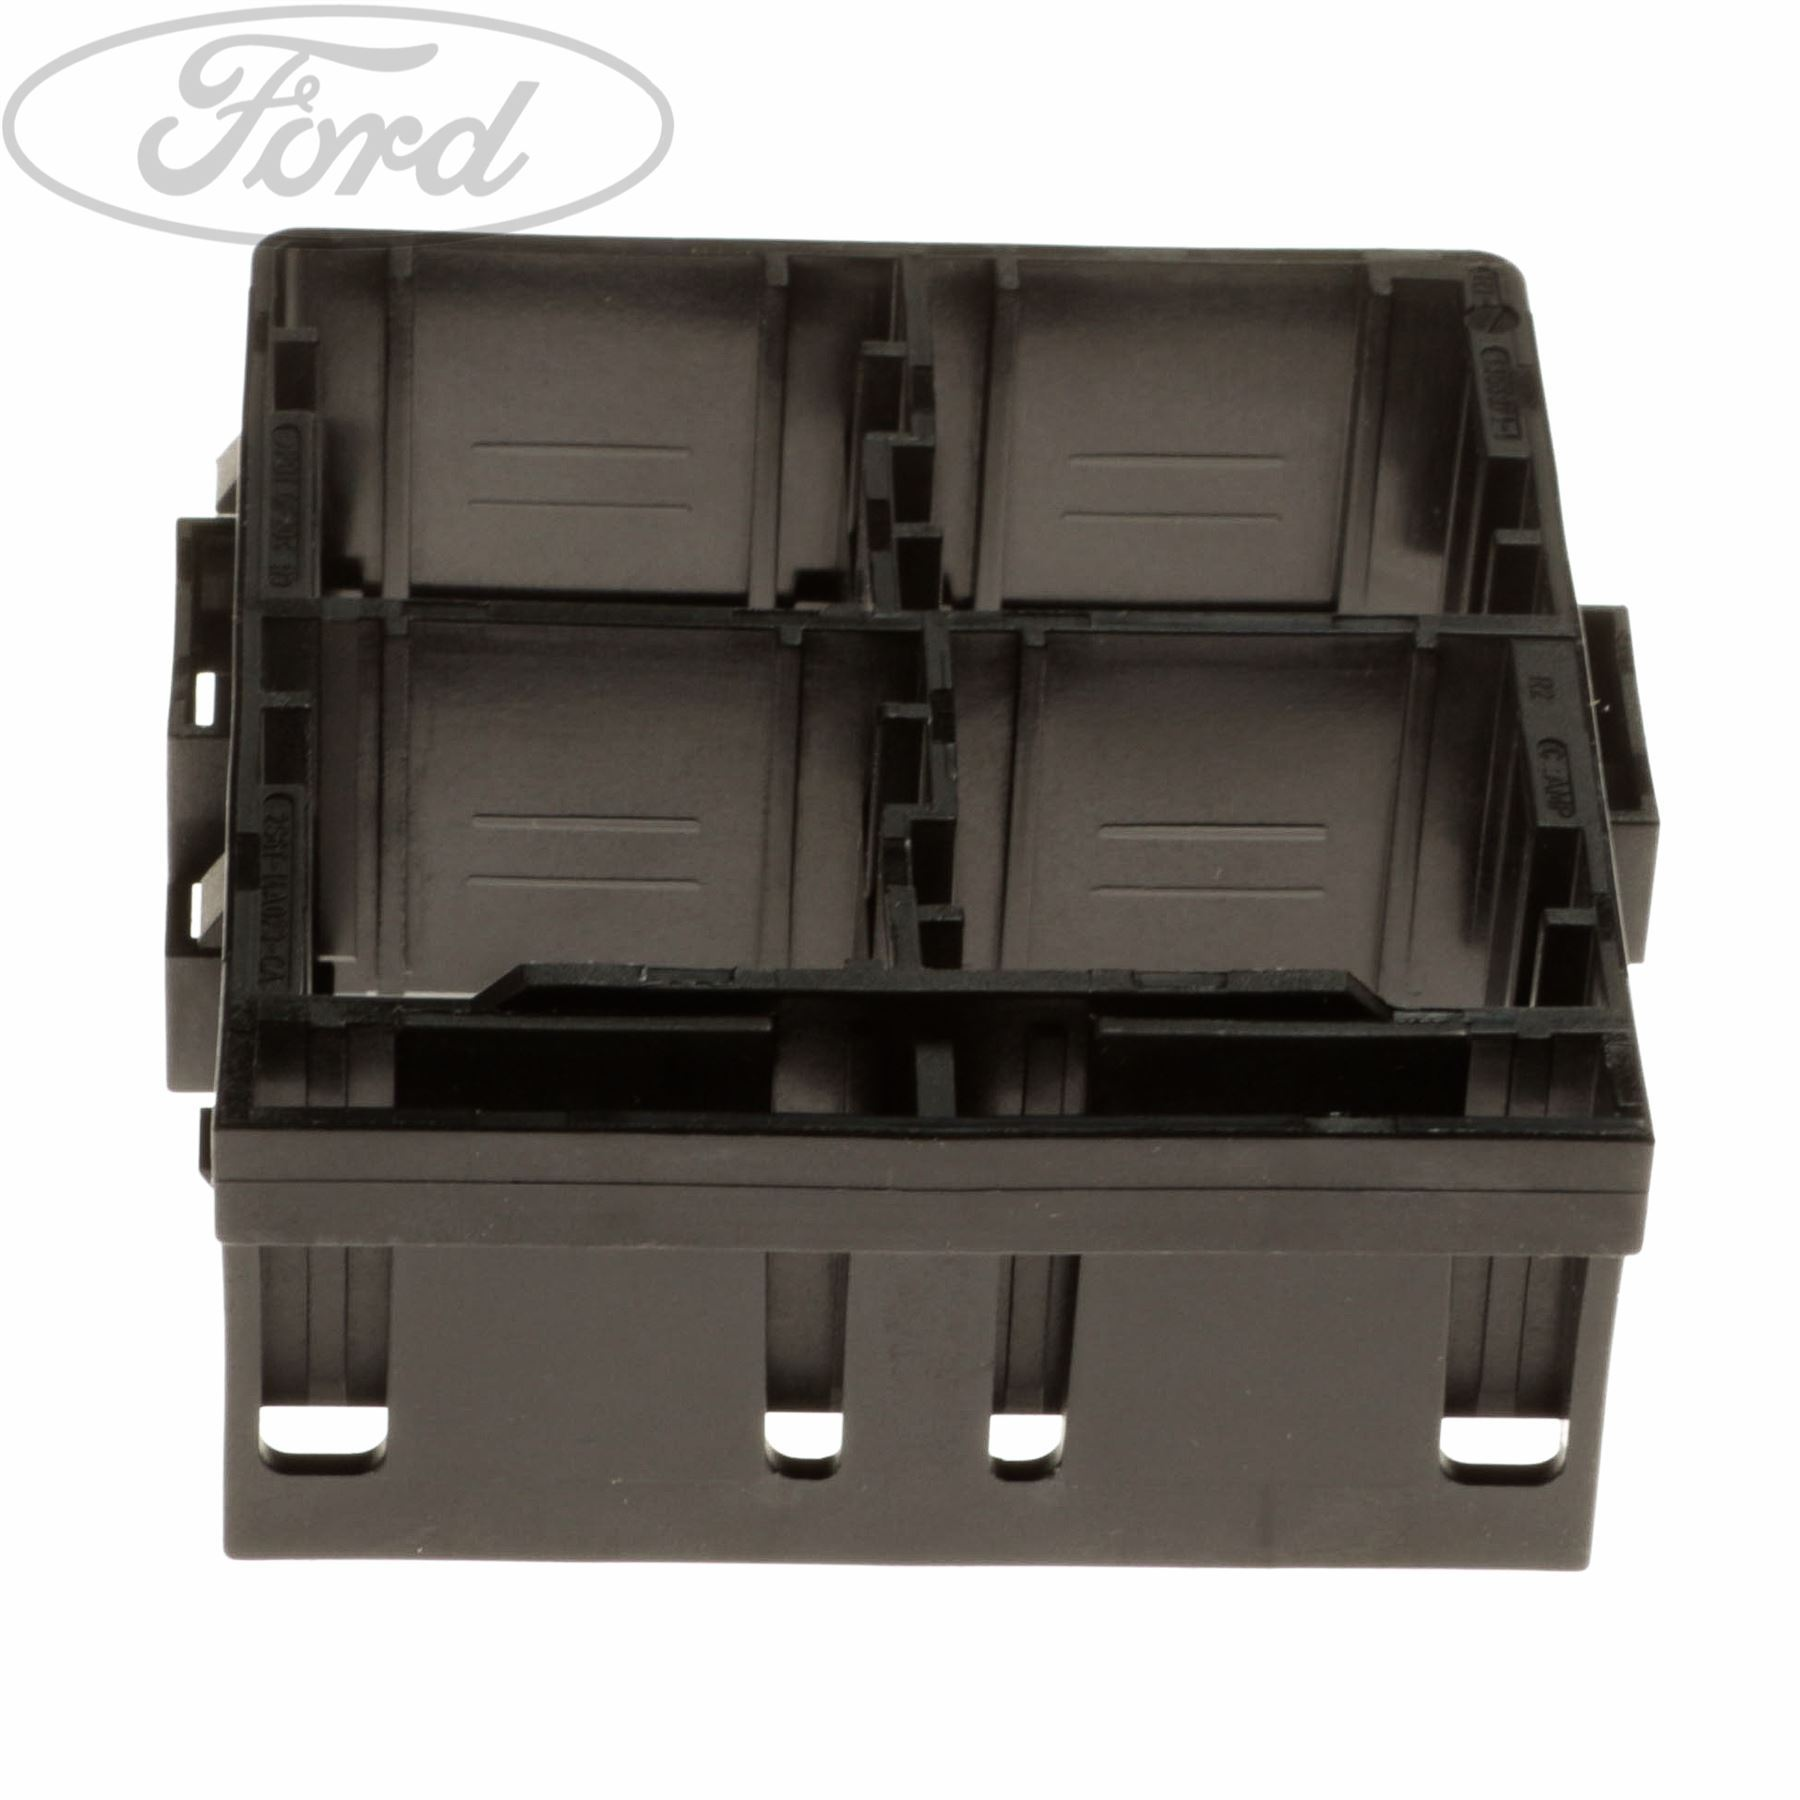 hight resolution of details about genuine ford fiesta mk6 fusion fuse junction panel 1142883